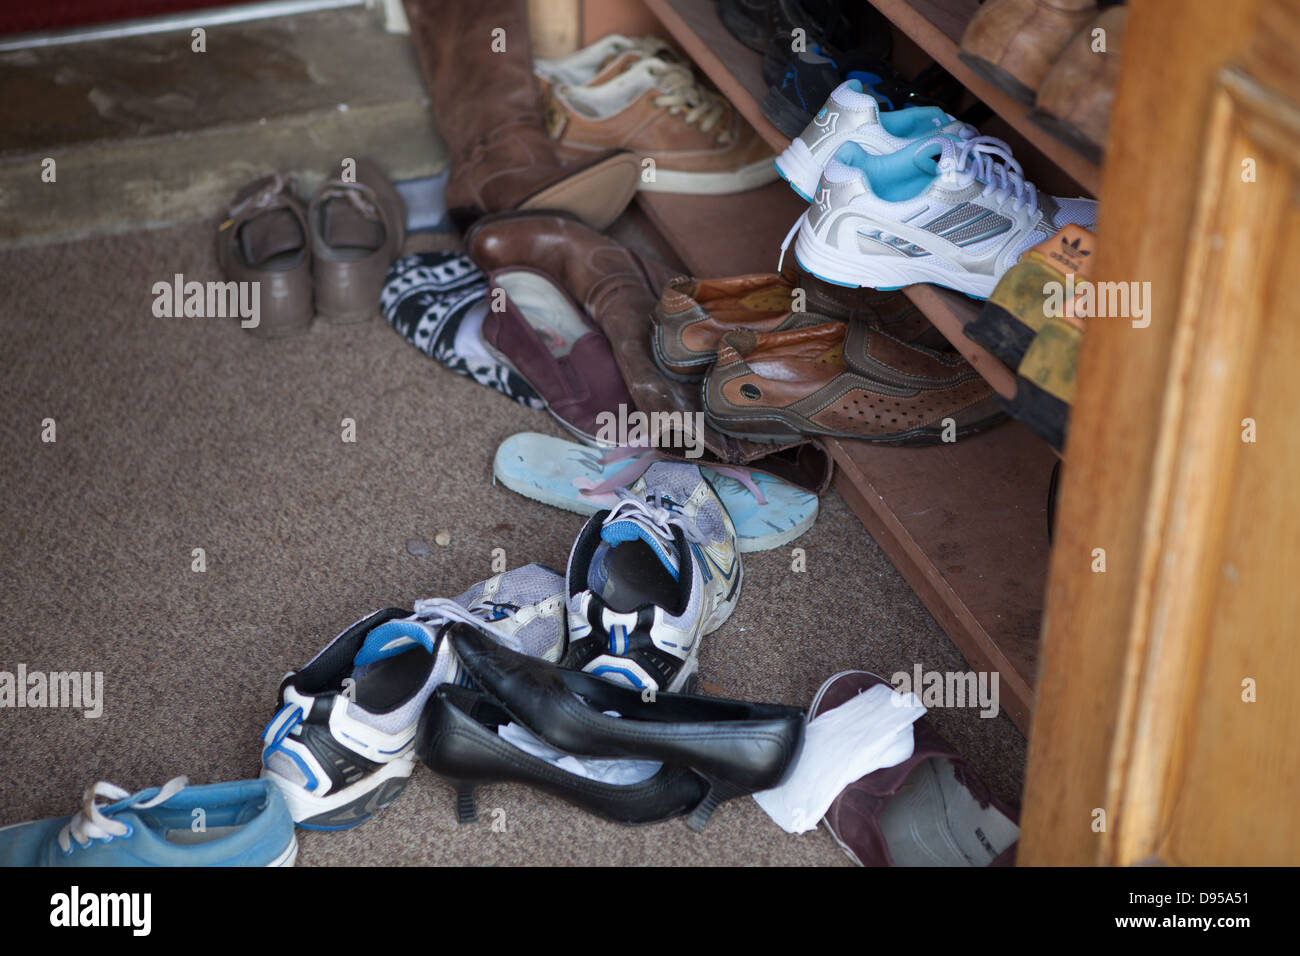 A varied collection of shoes and trainers outside a Thai Temple in the UK. - Stock Image